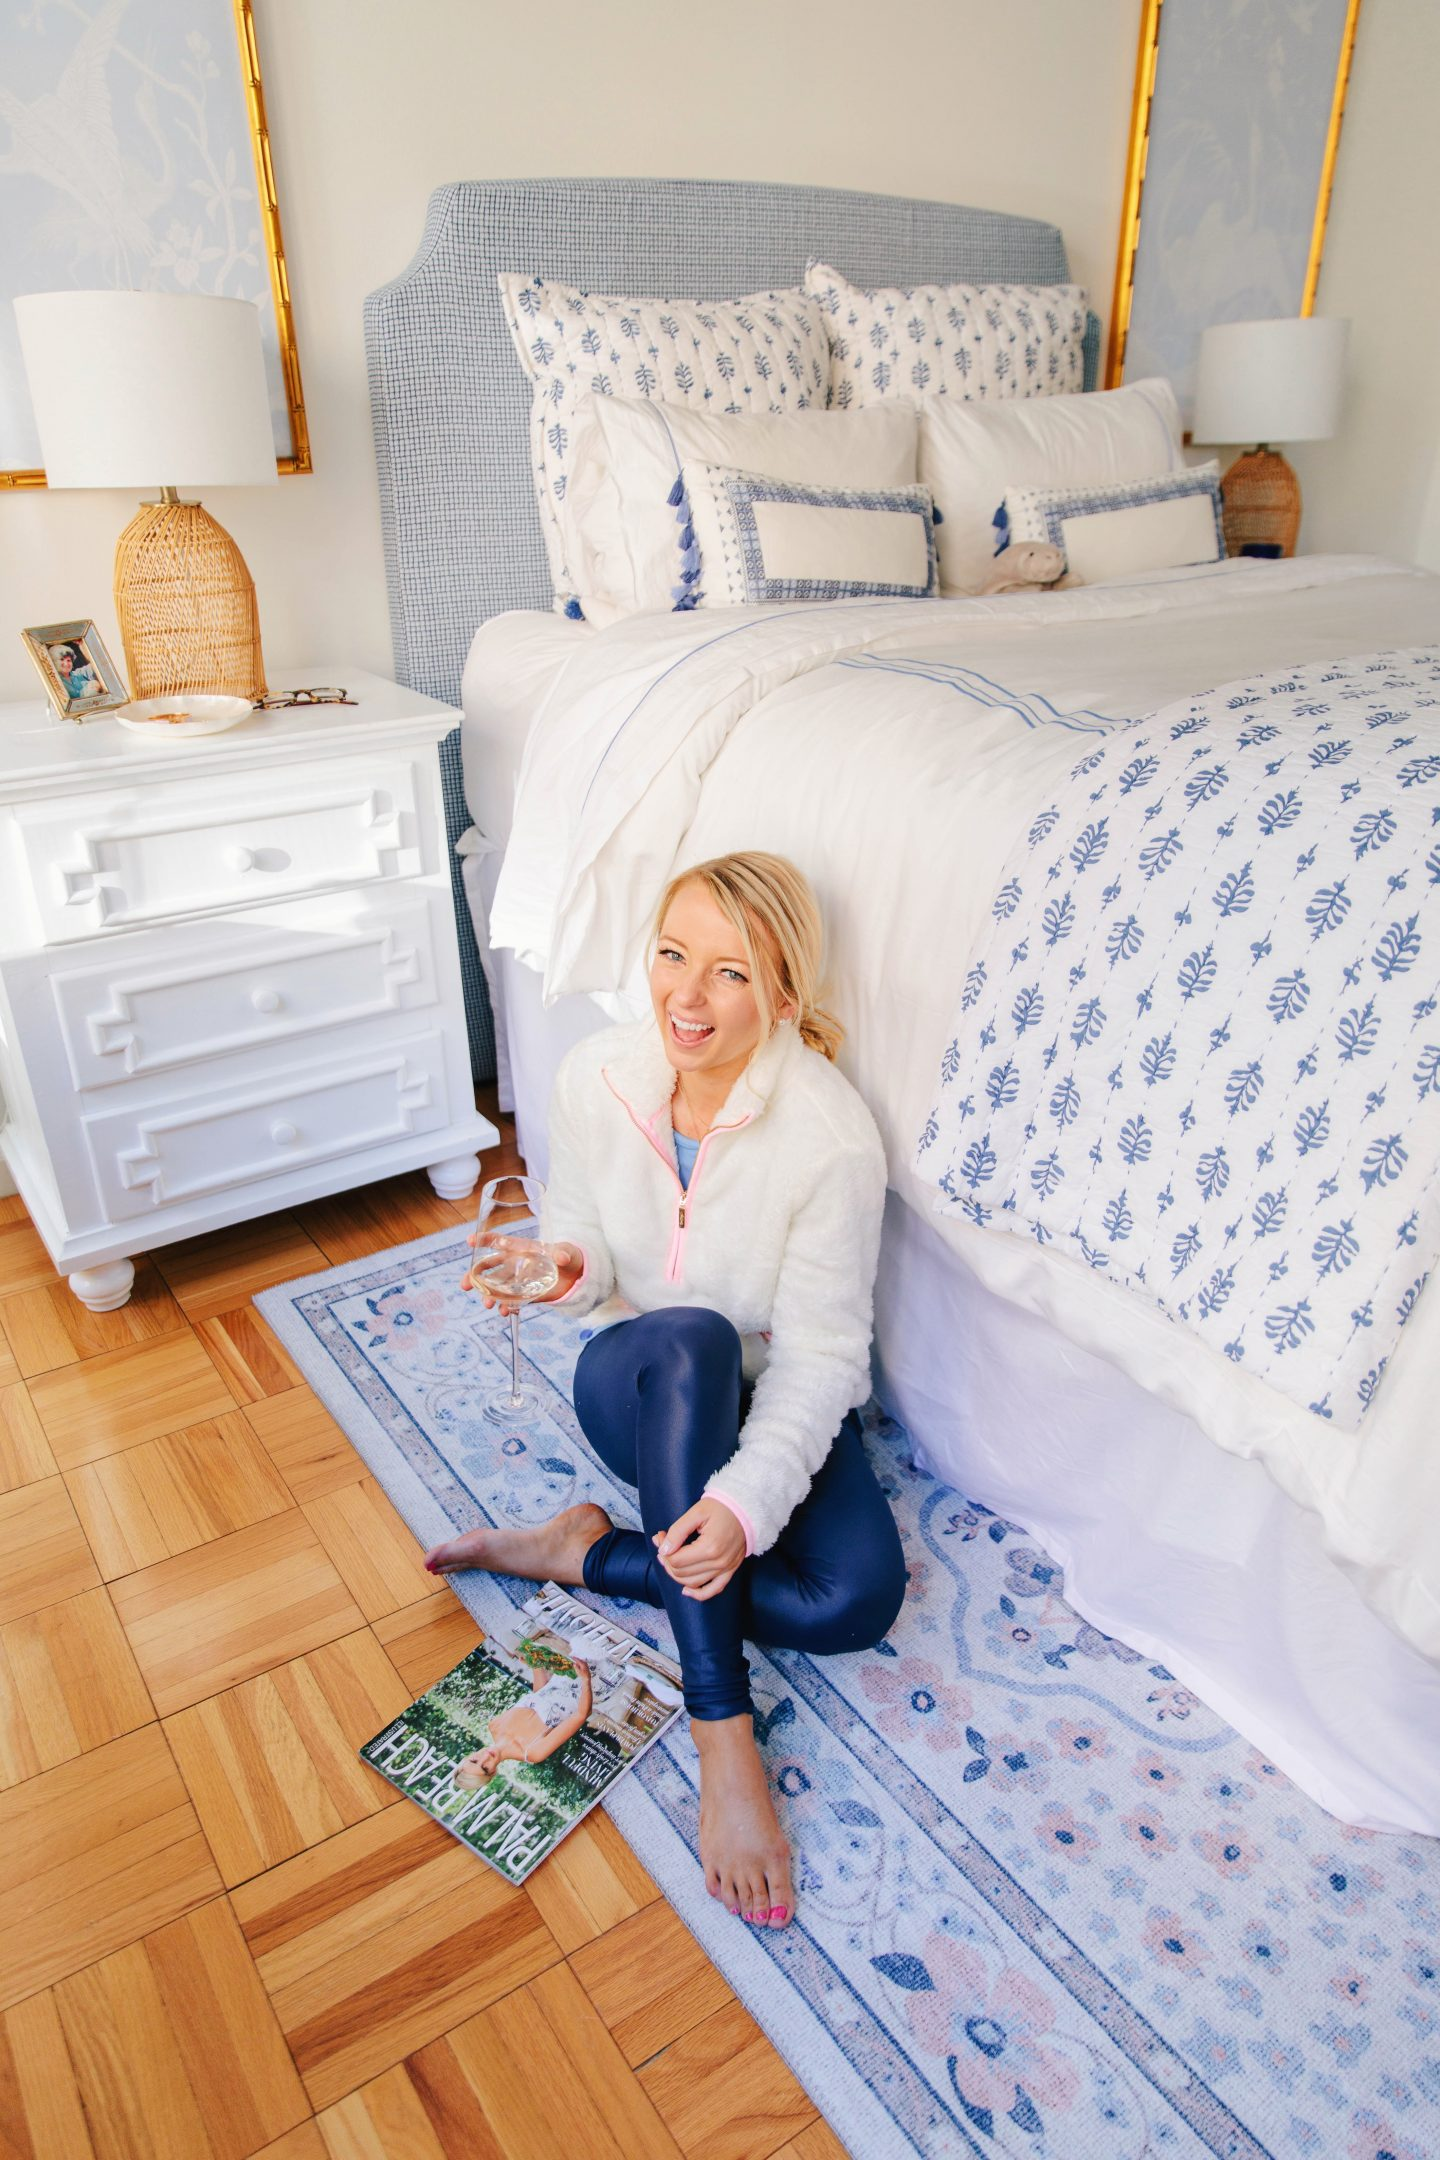 Apartment Bedroom Tour with Coley Home and Serena and Lily bedding